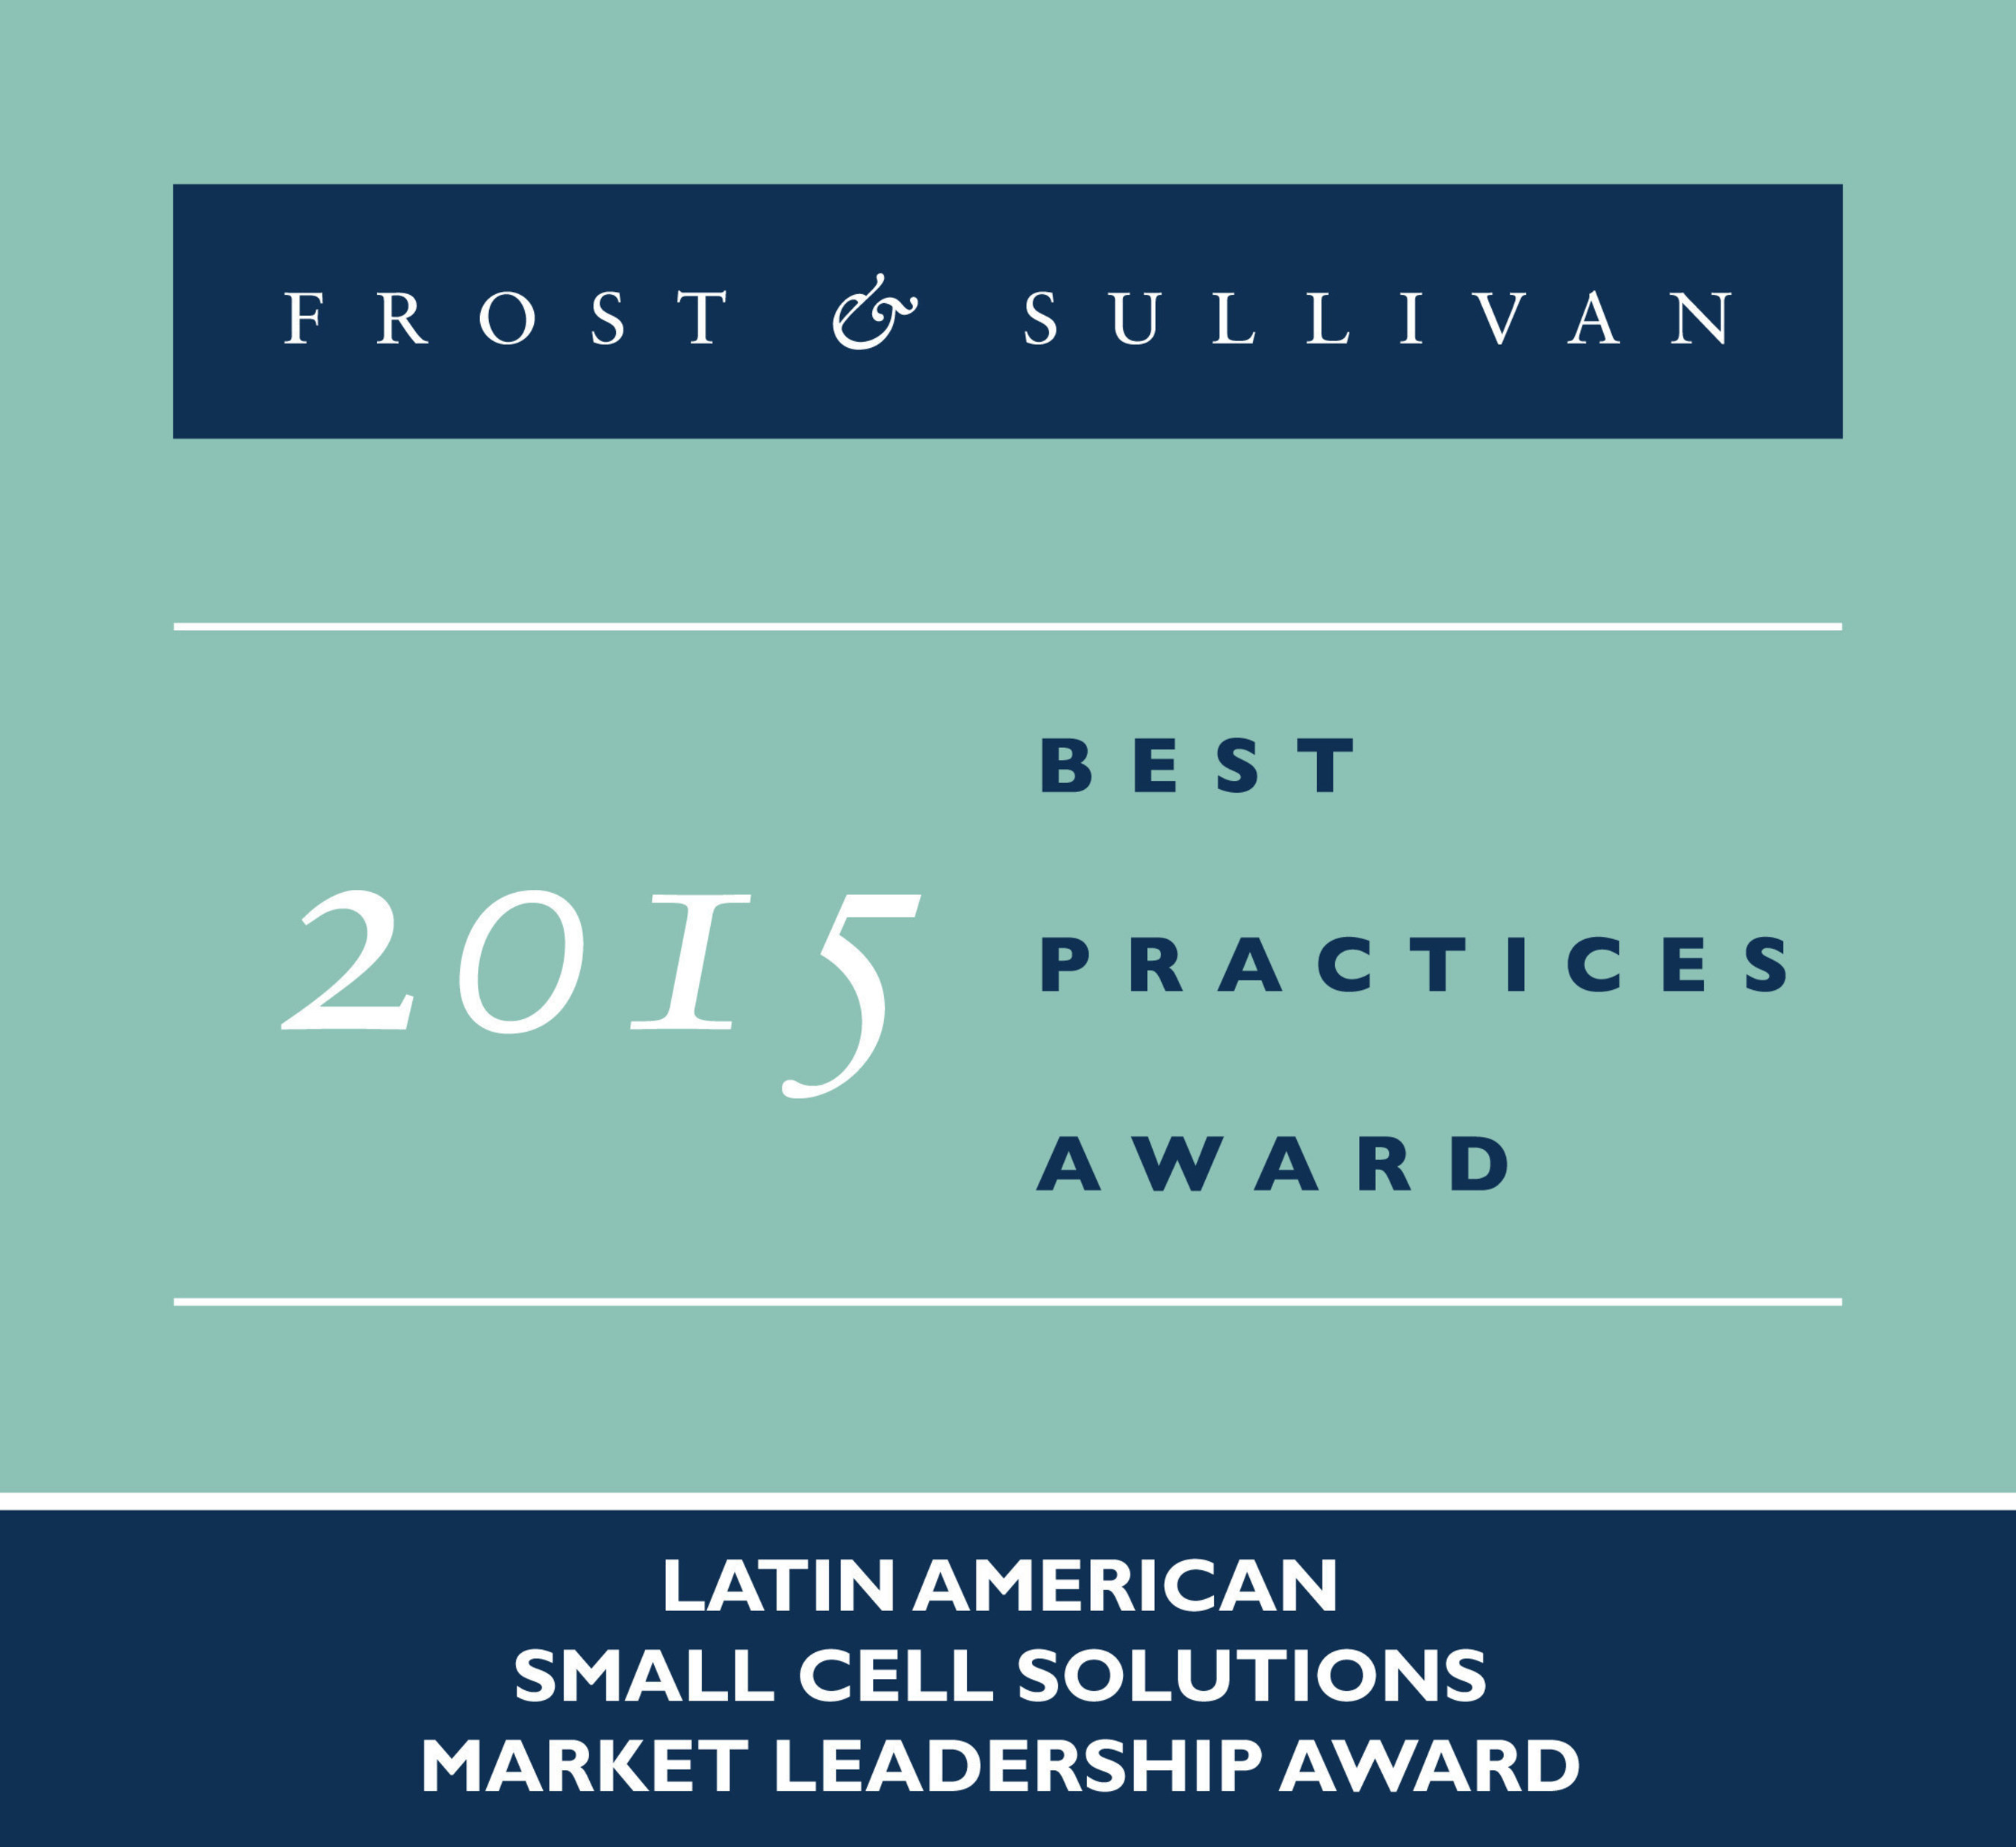 Frost & Sullivan Applauds Alcatel-Lucent's Strong Growth, Led by its Vision for Small Cells